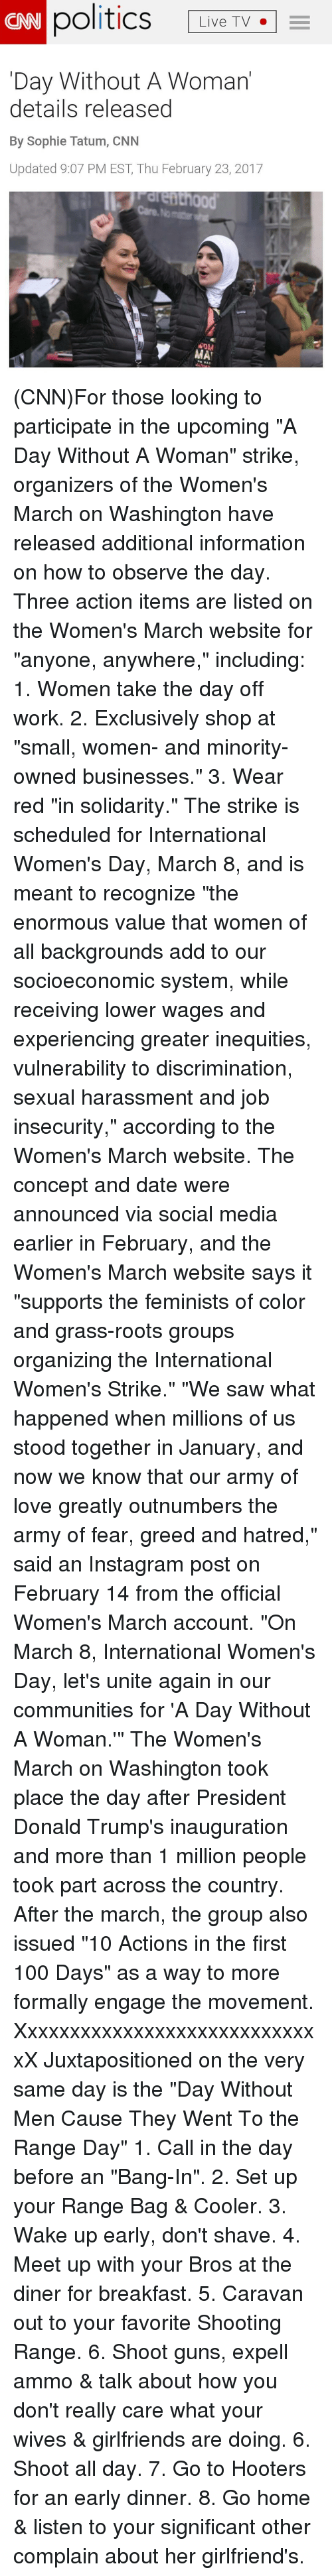 """Community, Dating, and Guns: CAN politics  Live TV.  TV  Day Without A Woman  details released  By Sophie Tatum, CNN  Updated 9:07 PM EST, Thu February 23, 2017  NOM  MAT (CNN)For those looking to participate in the upcoming """"A Day Without A Woman"""" strike, organizers of the Women's March on Washington have released additional information on how to observe the day. Three action items are listed on the Women's March website for """"anyone, anywhere,"""" including: 1. Women take the day off work. 2. Exclusively shop at """"small, women- and minority-owned businesses."""" 3. Wear red """"in solidarity."""" The strike is scheduled for International Women's Day, March 8, and is meant to recognize """"the enormous value that women of all backgrounds add to our socioeconomic system, while receiving lower wages and experiencing greater inequities, vulnerability to discrimination, sexual harassment and job insecurity,"""" according to the Women's March website. The concept and date were announced via social media earlier in February, and the Women's March website says it """"supports the feminists of color and grass-roots groups organizing the International Women's Strike."""" """"We saw what happened when millions of us stood together in January, and now we know that our army of love greatly outnumbers the army of fear, greed and hatred,"""" said an Instagram post on February 14 from the official Women's March account. """"On March 8, International Women's Day, let's unite again in our communities for 'A Day Without A Woman.'"""" The Women's March on Washington took place the day after President Donald Trump's inauguration and more than 1 million people took part across the country. After the march, the group also issued """"10 Actions in the first 100 Days"""" as a way to more formally engage the movement. XxxxxxxxxxxxxxxxxxxxxxxxxxxxxX Juxtapositioned on the very same day is the """"Day Without Men Cause They Went To the Range Day"""" 1. Call in the day before an """"Bang-In"""". 2. Set up your Range Bag & Cooler. 3. Wake up early,"""